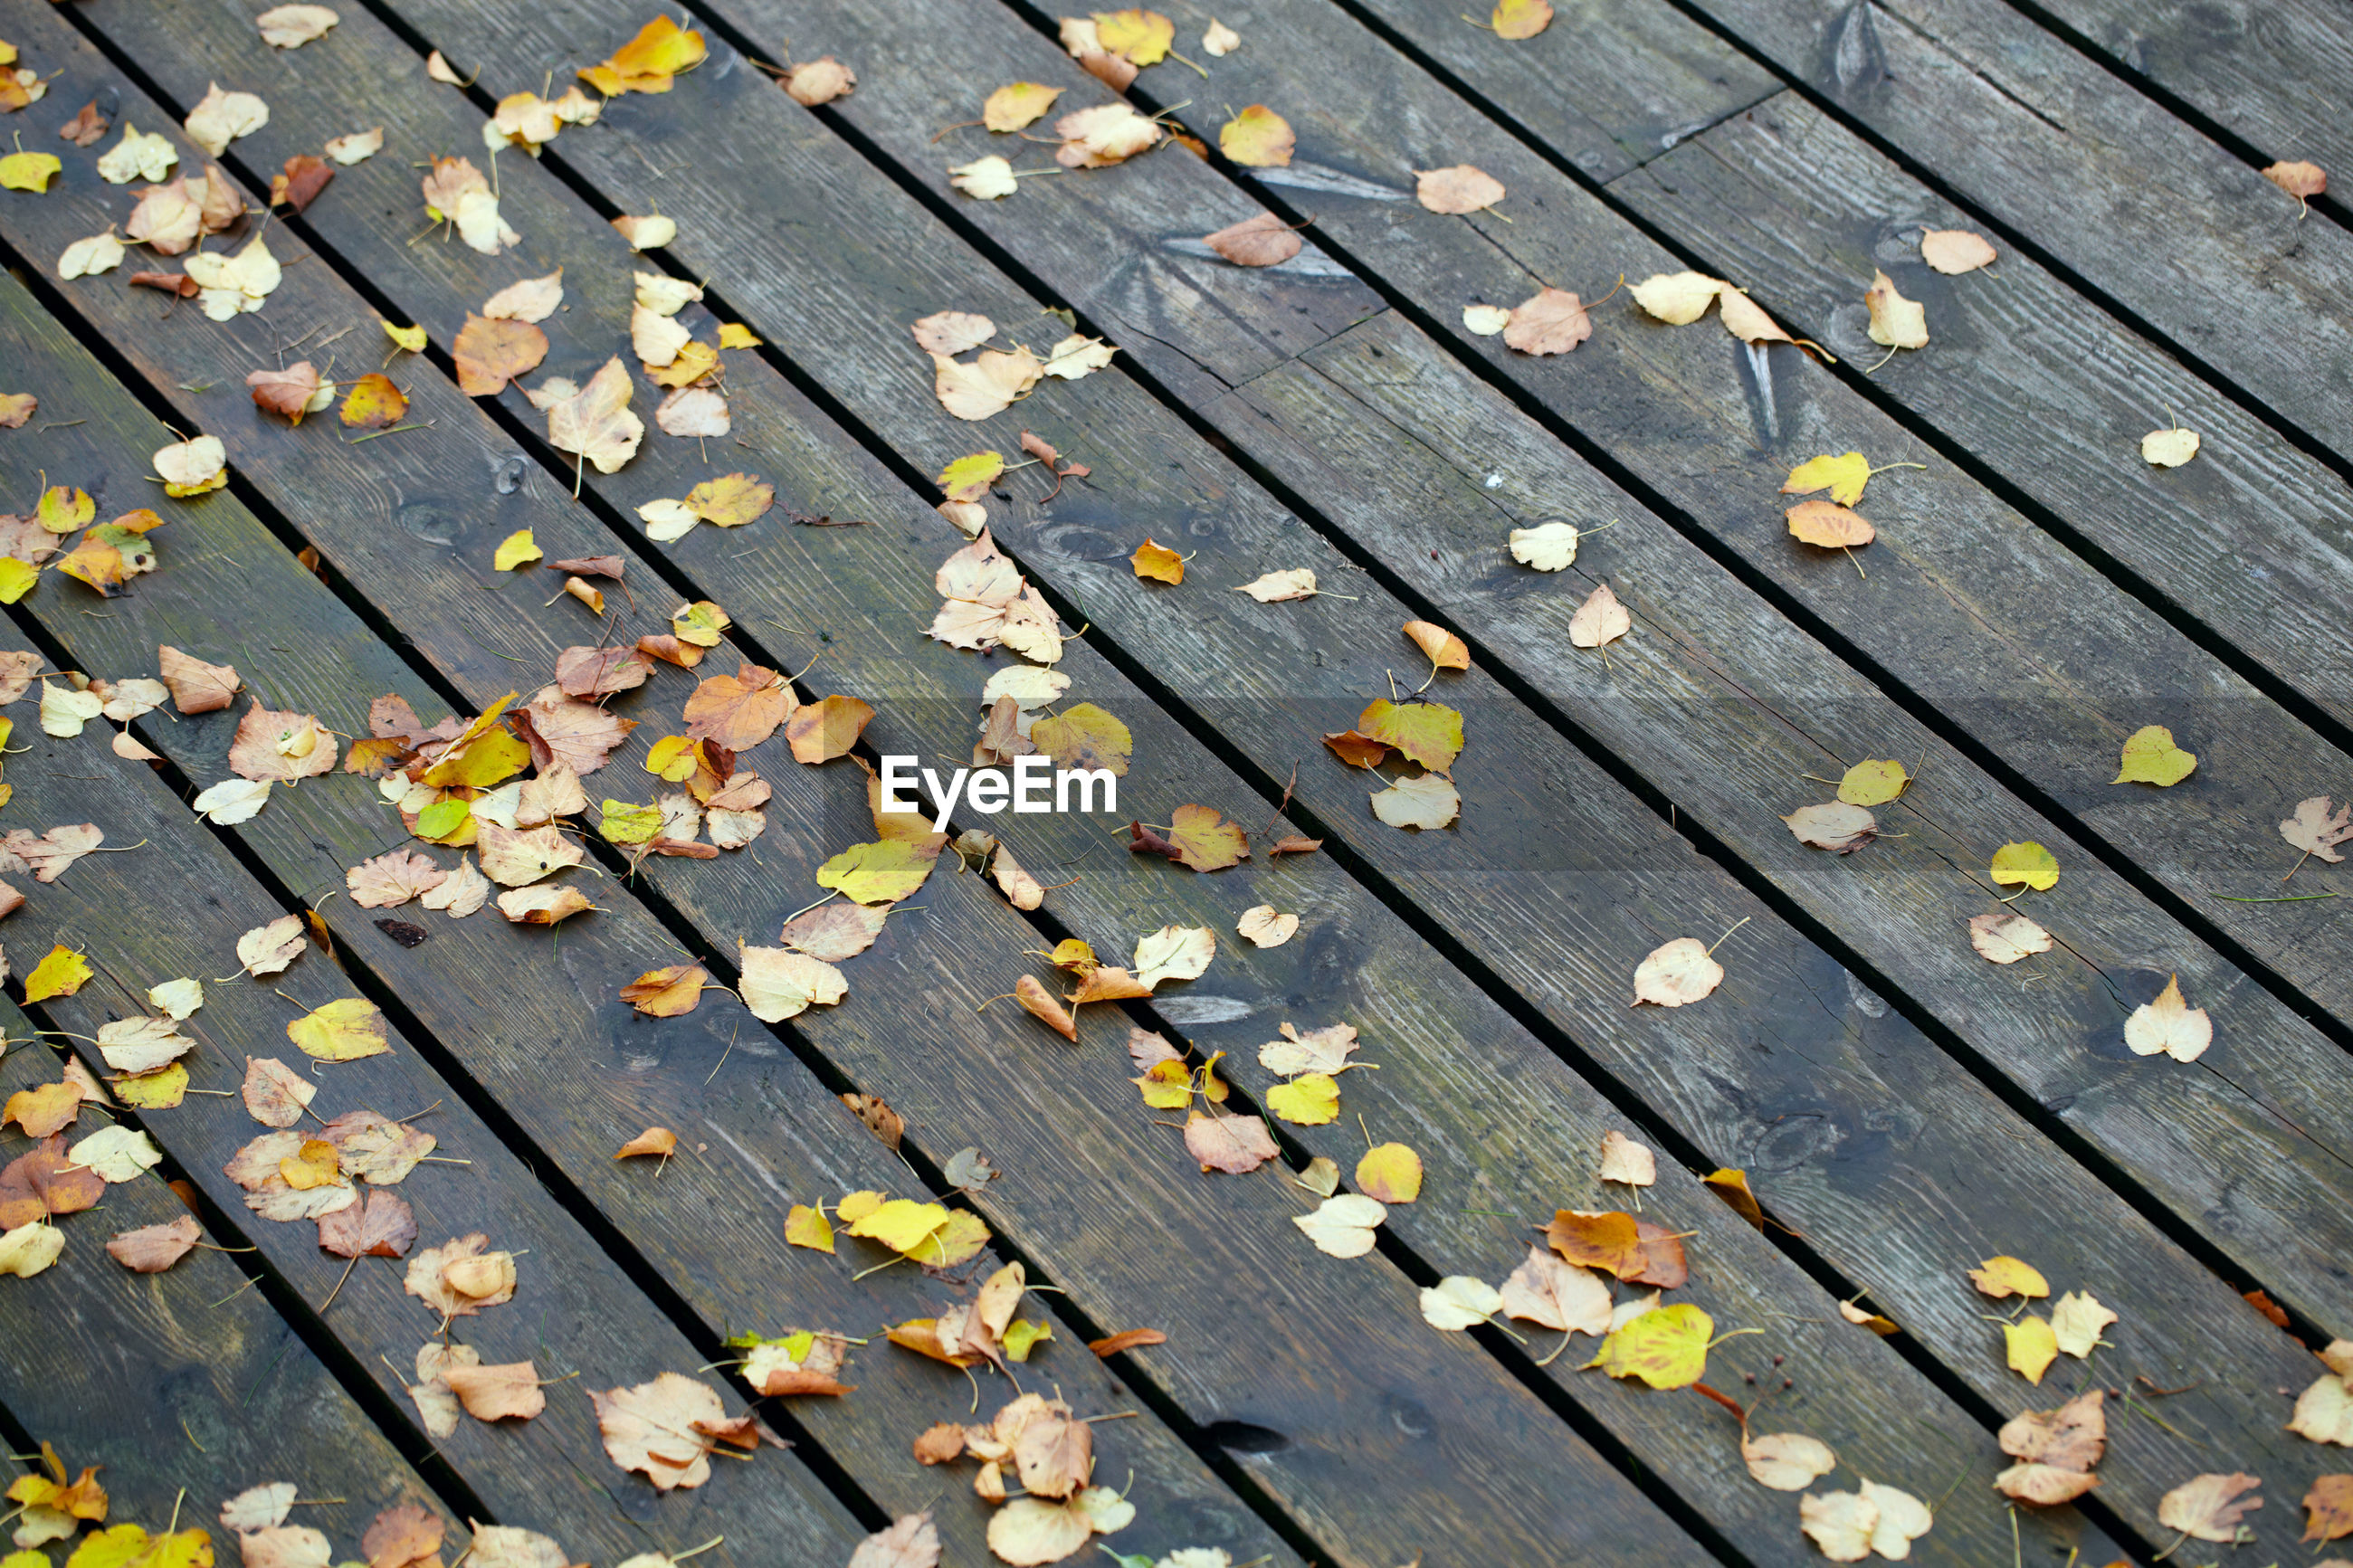 High angle view of leaves on wooden surface